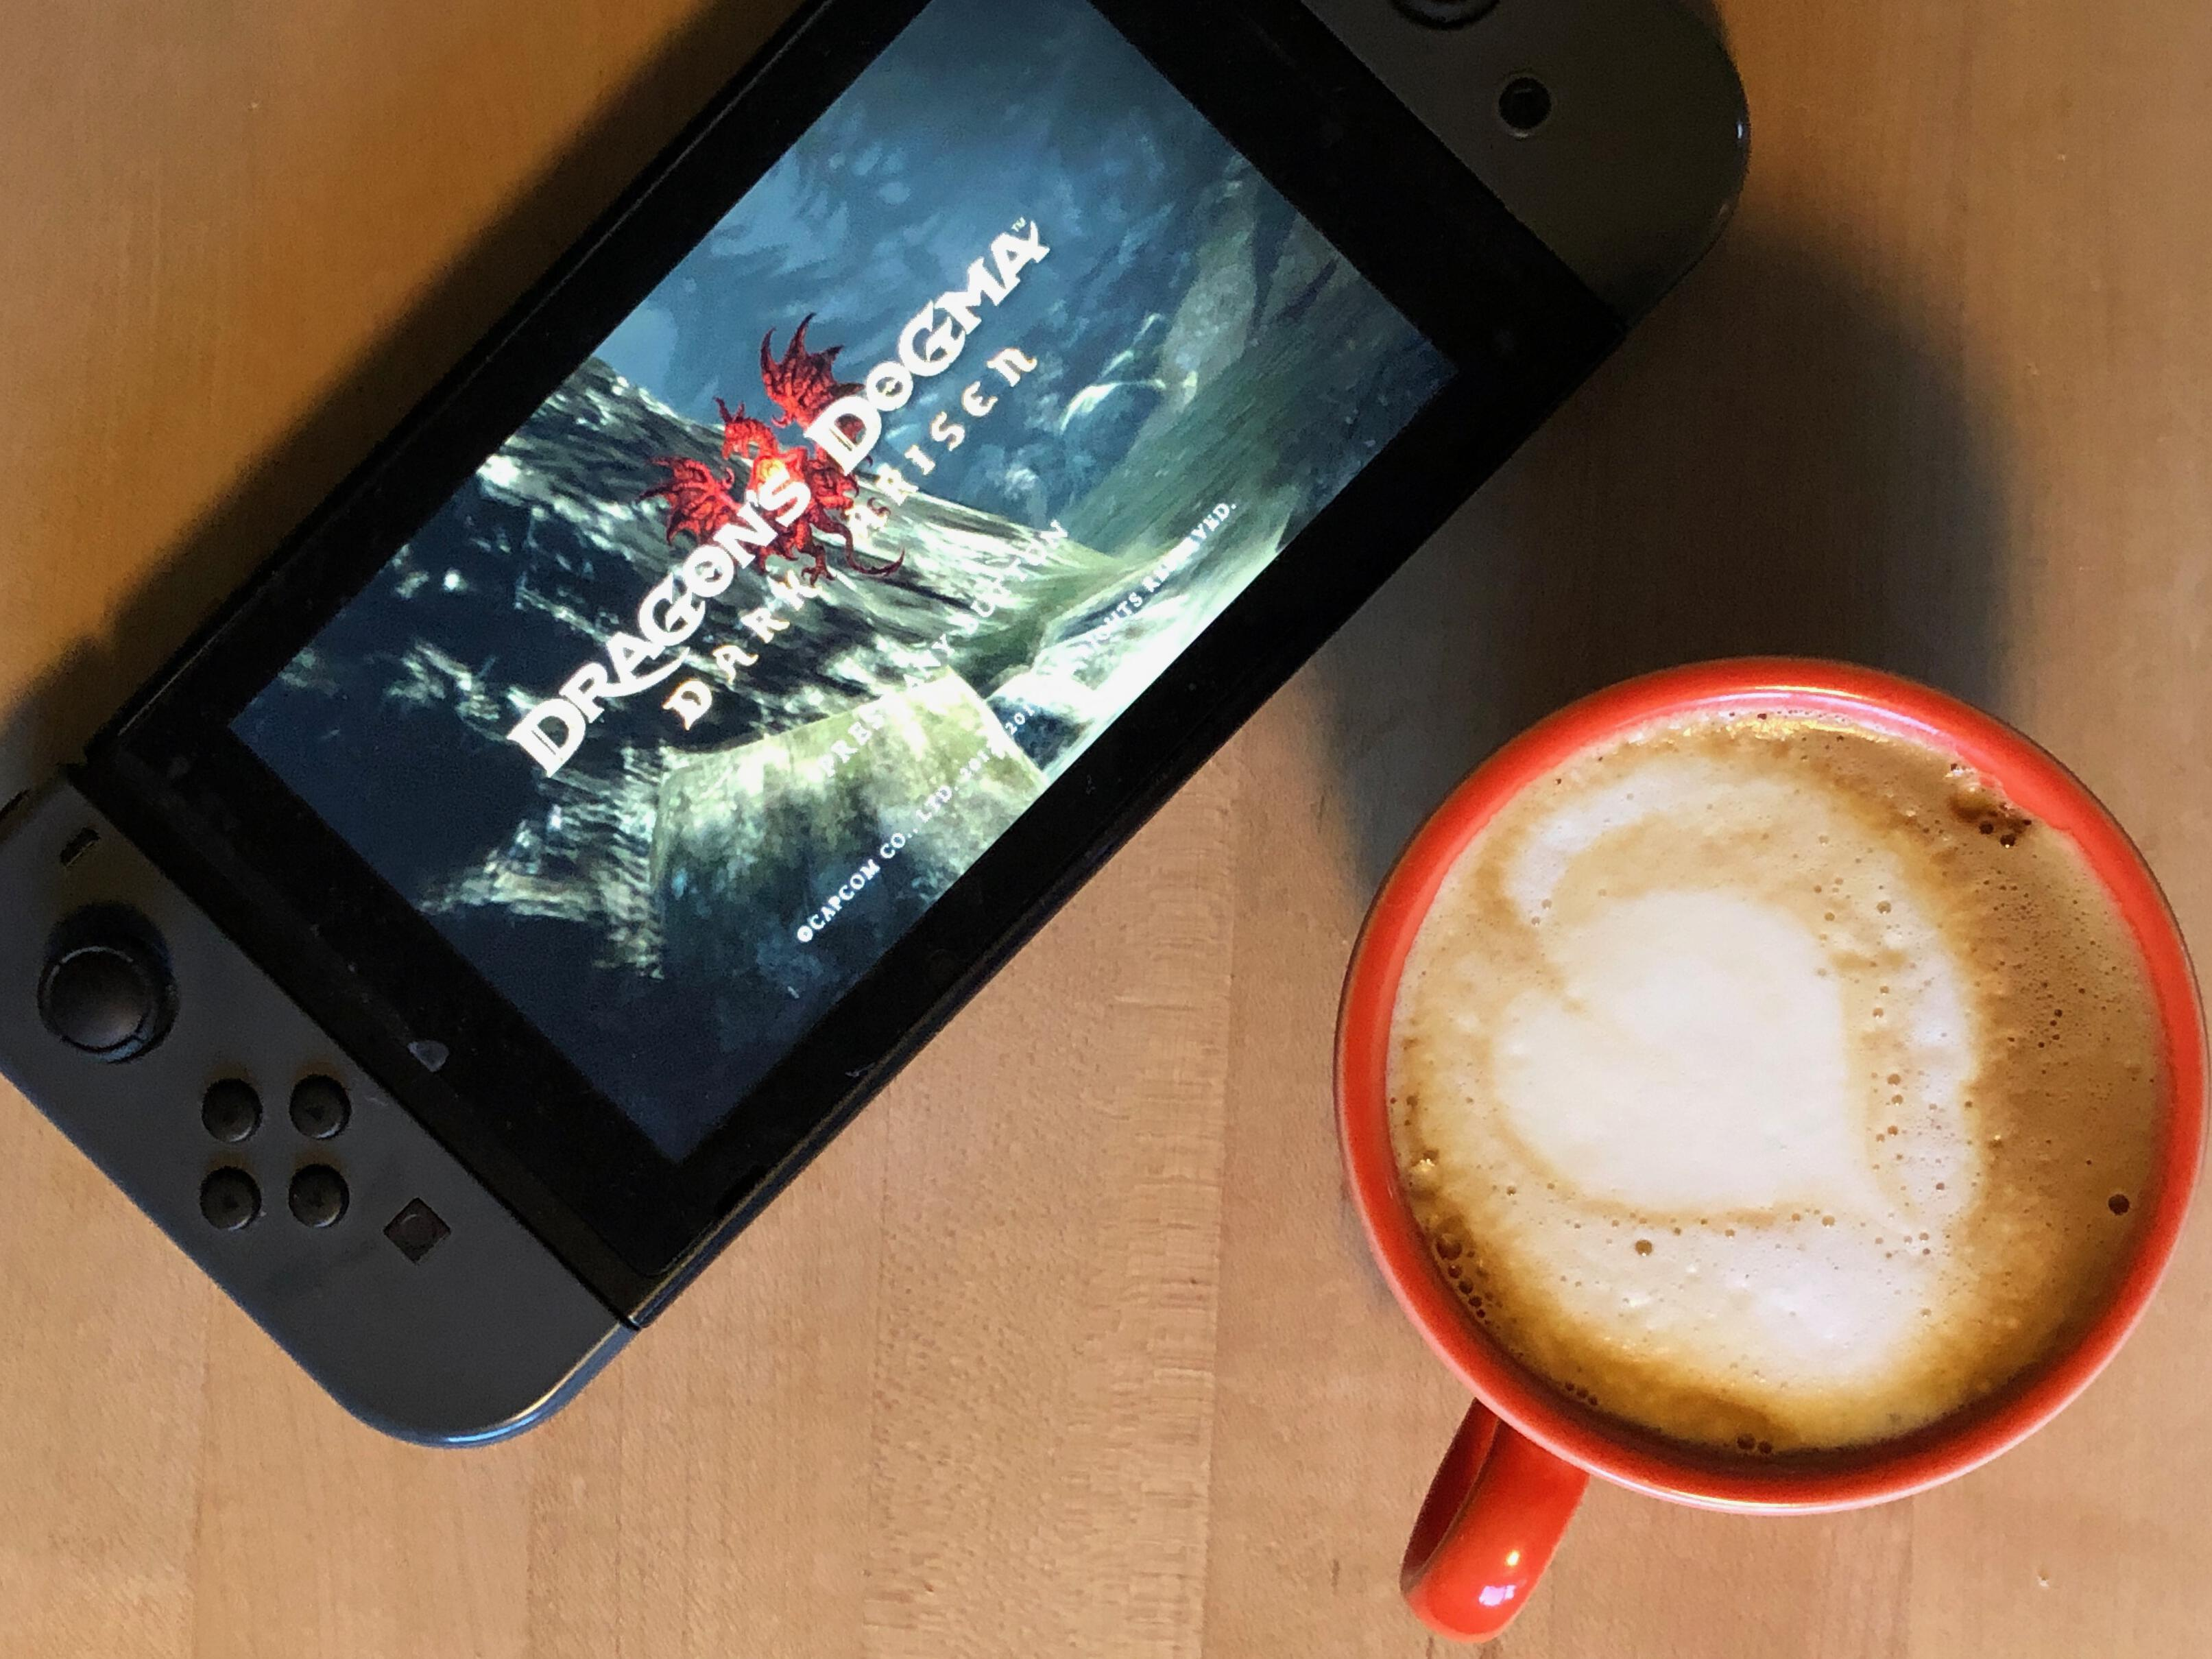 Cappuccino and a Switch with Dragon's Dogma on the screen